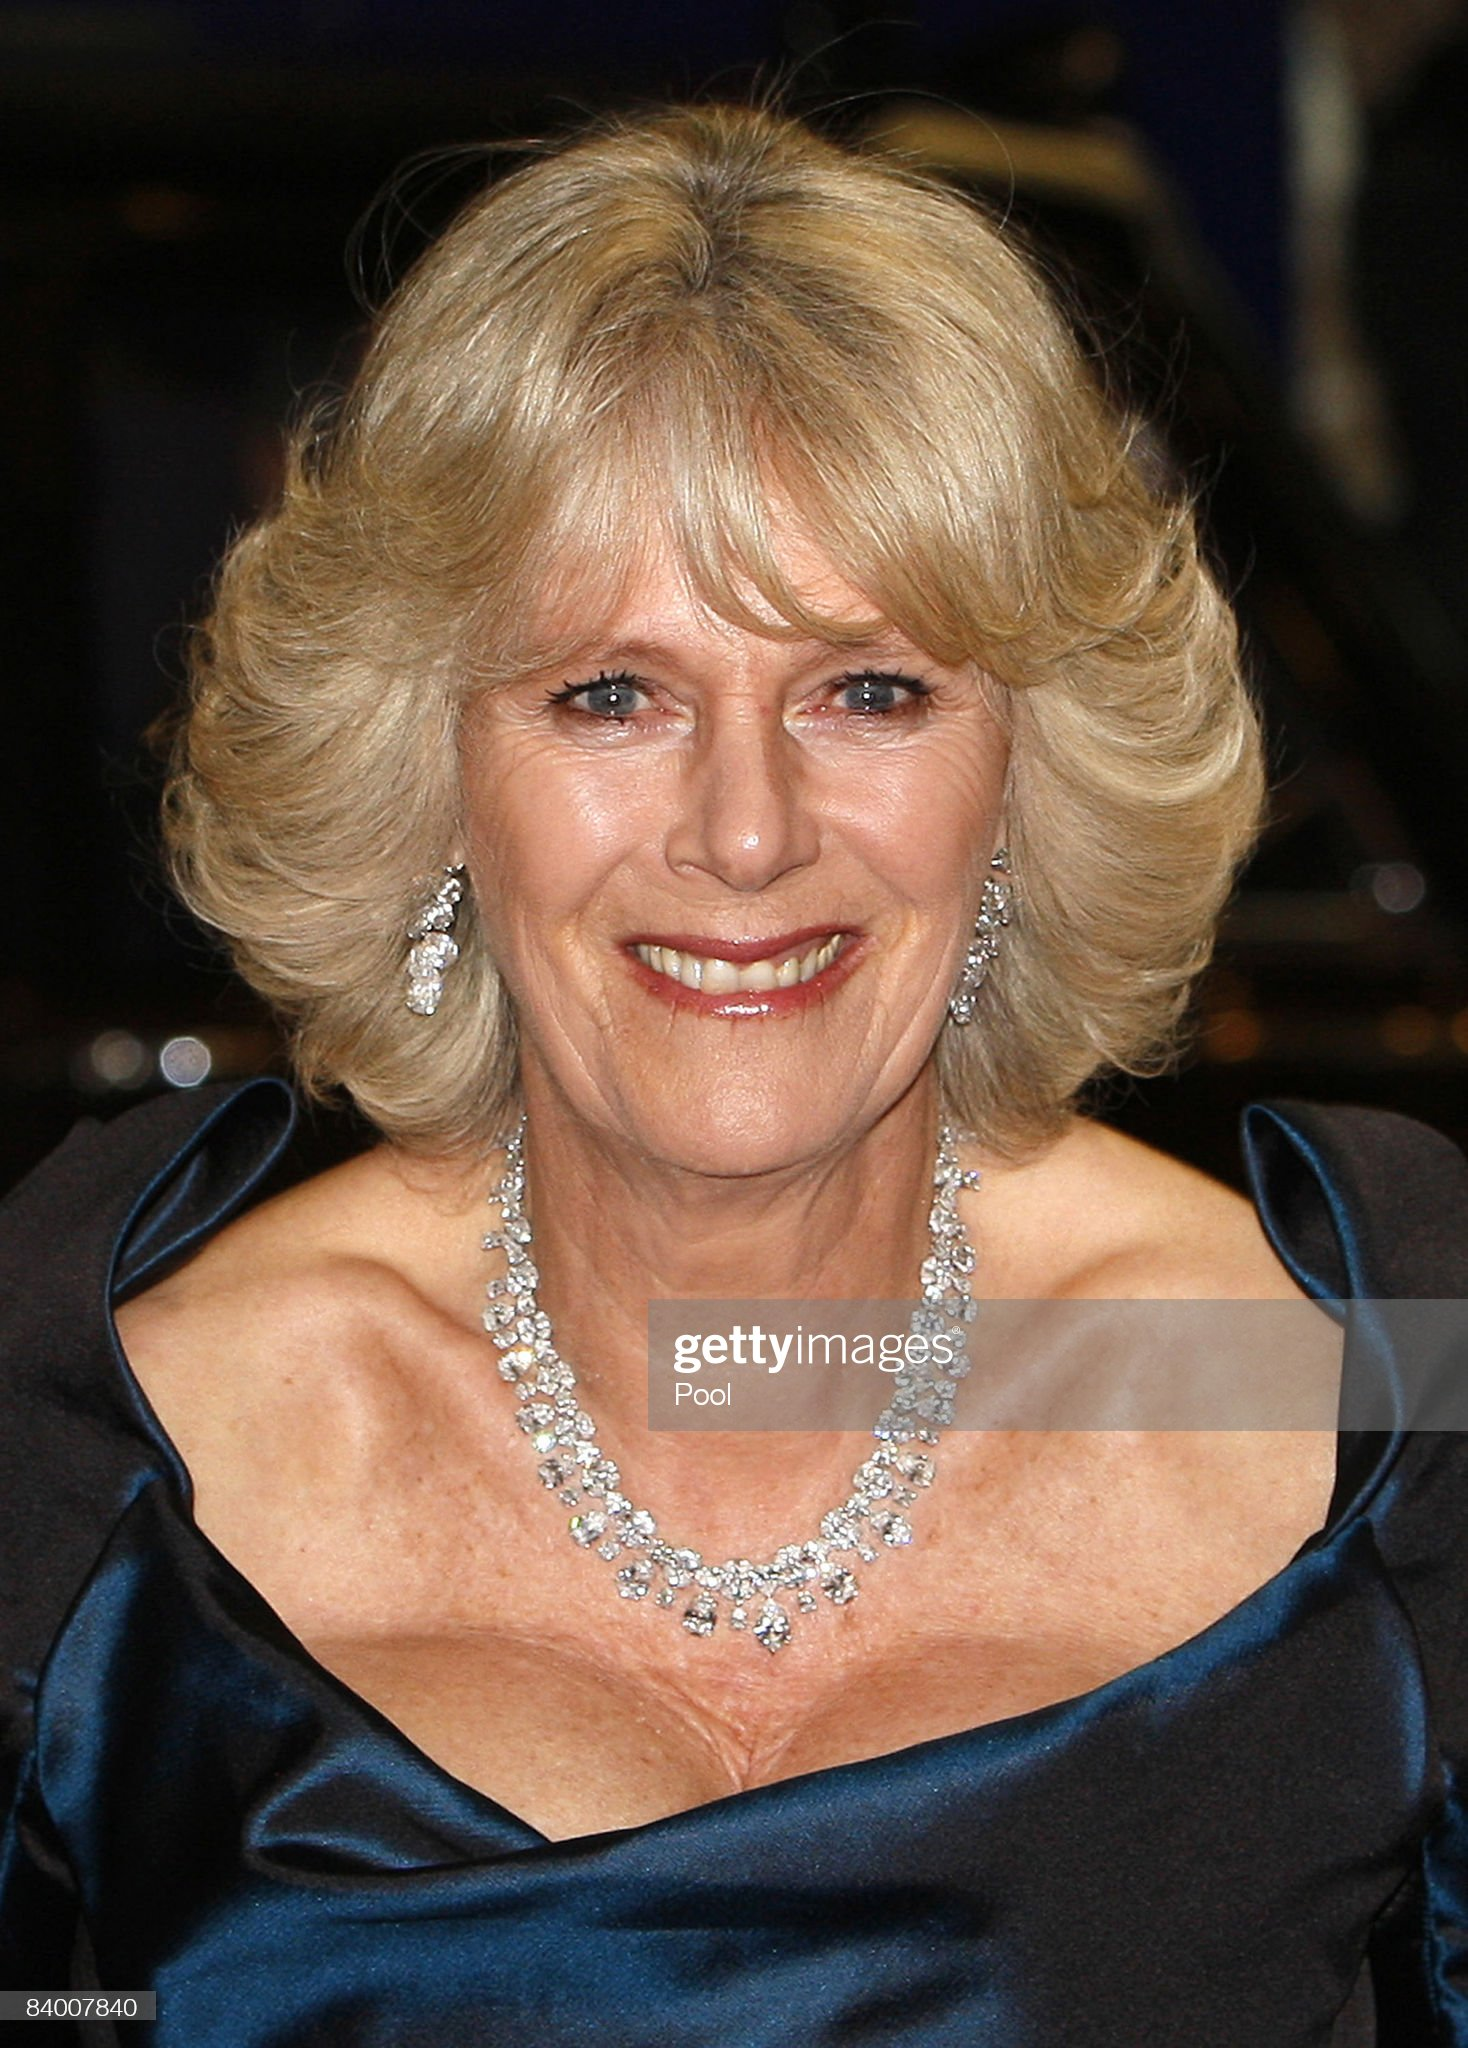 Prince Charles And Camilla Attend Royal Variety Performance : News Photo